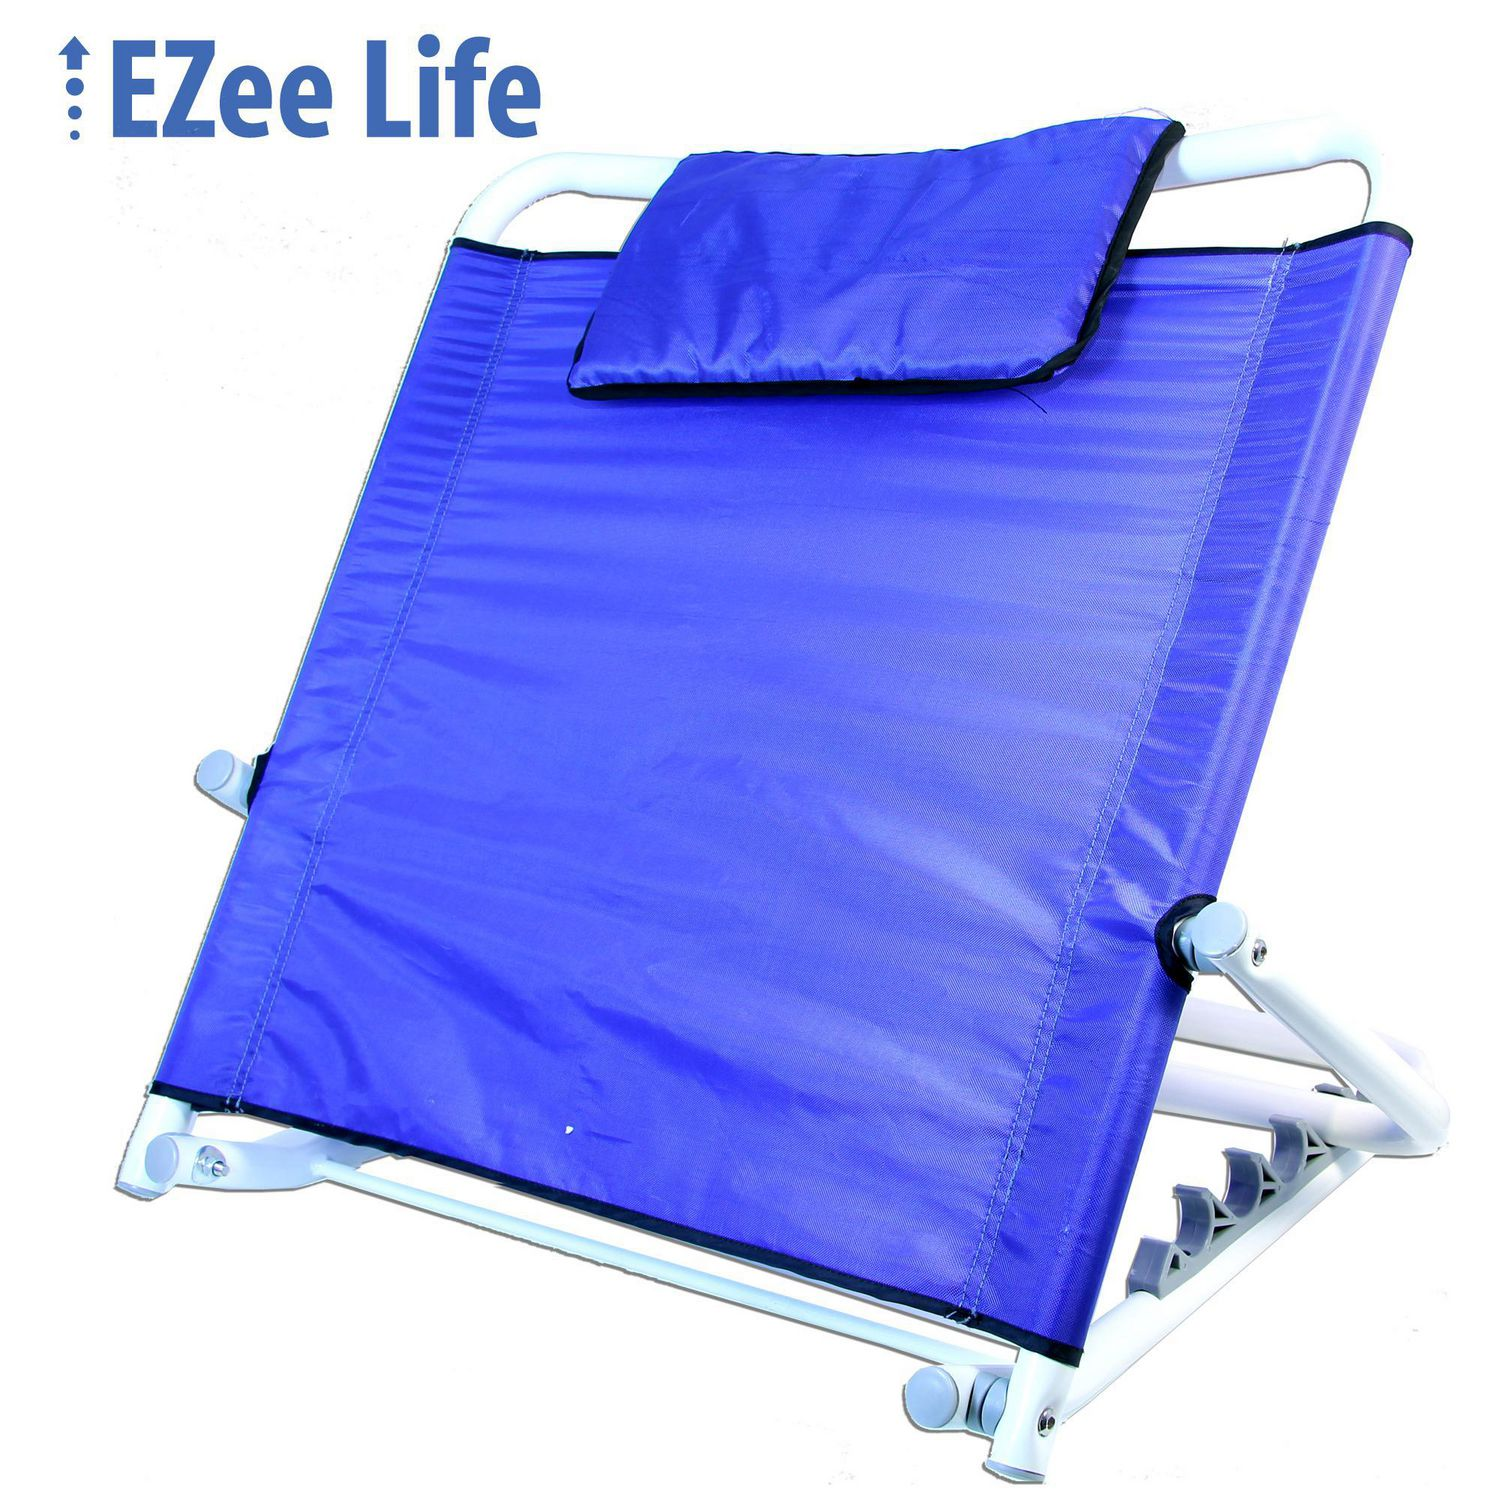 Ezee Life Bed Rest Back Support with Adjustable Angles | Walmart ...